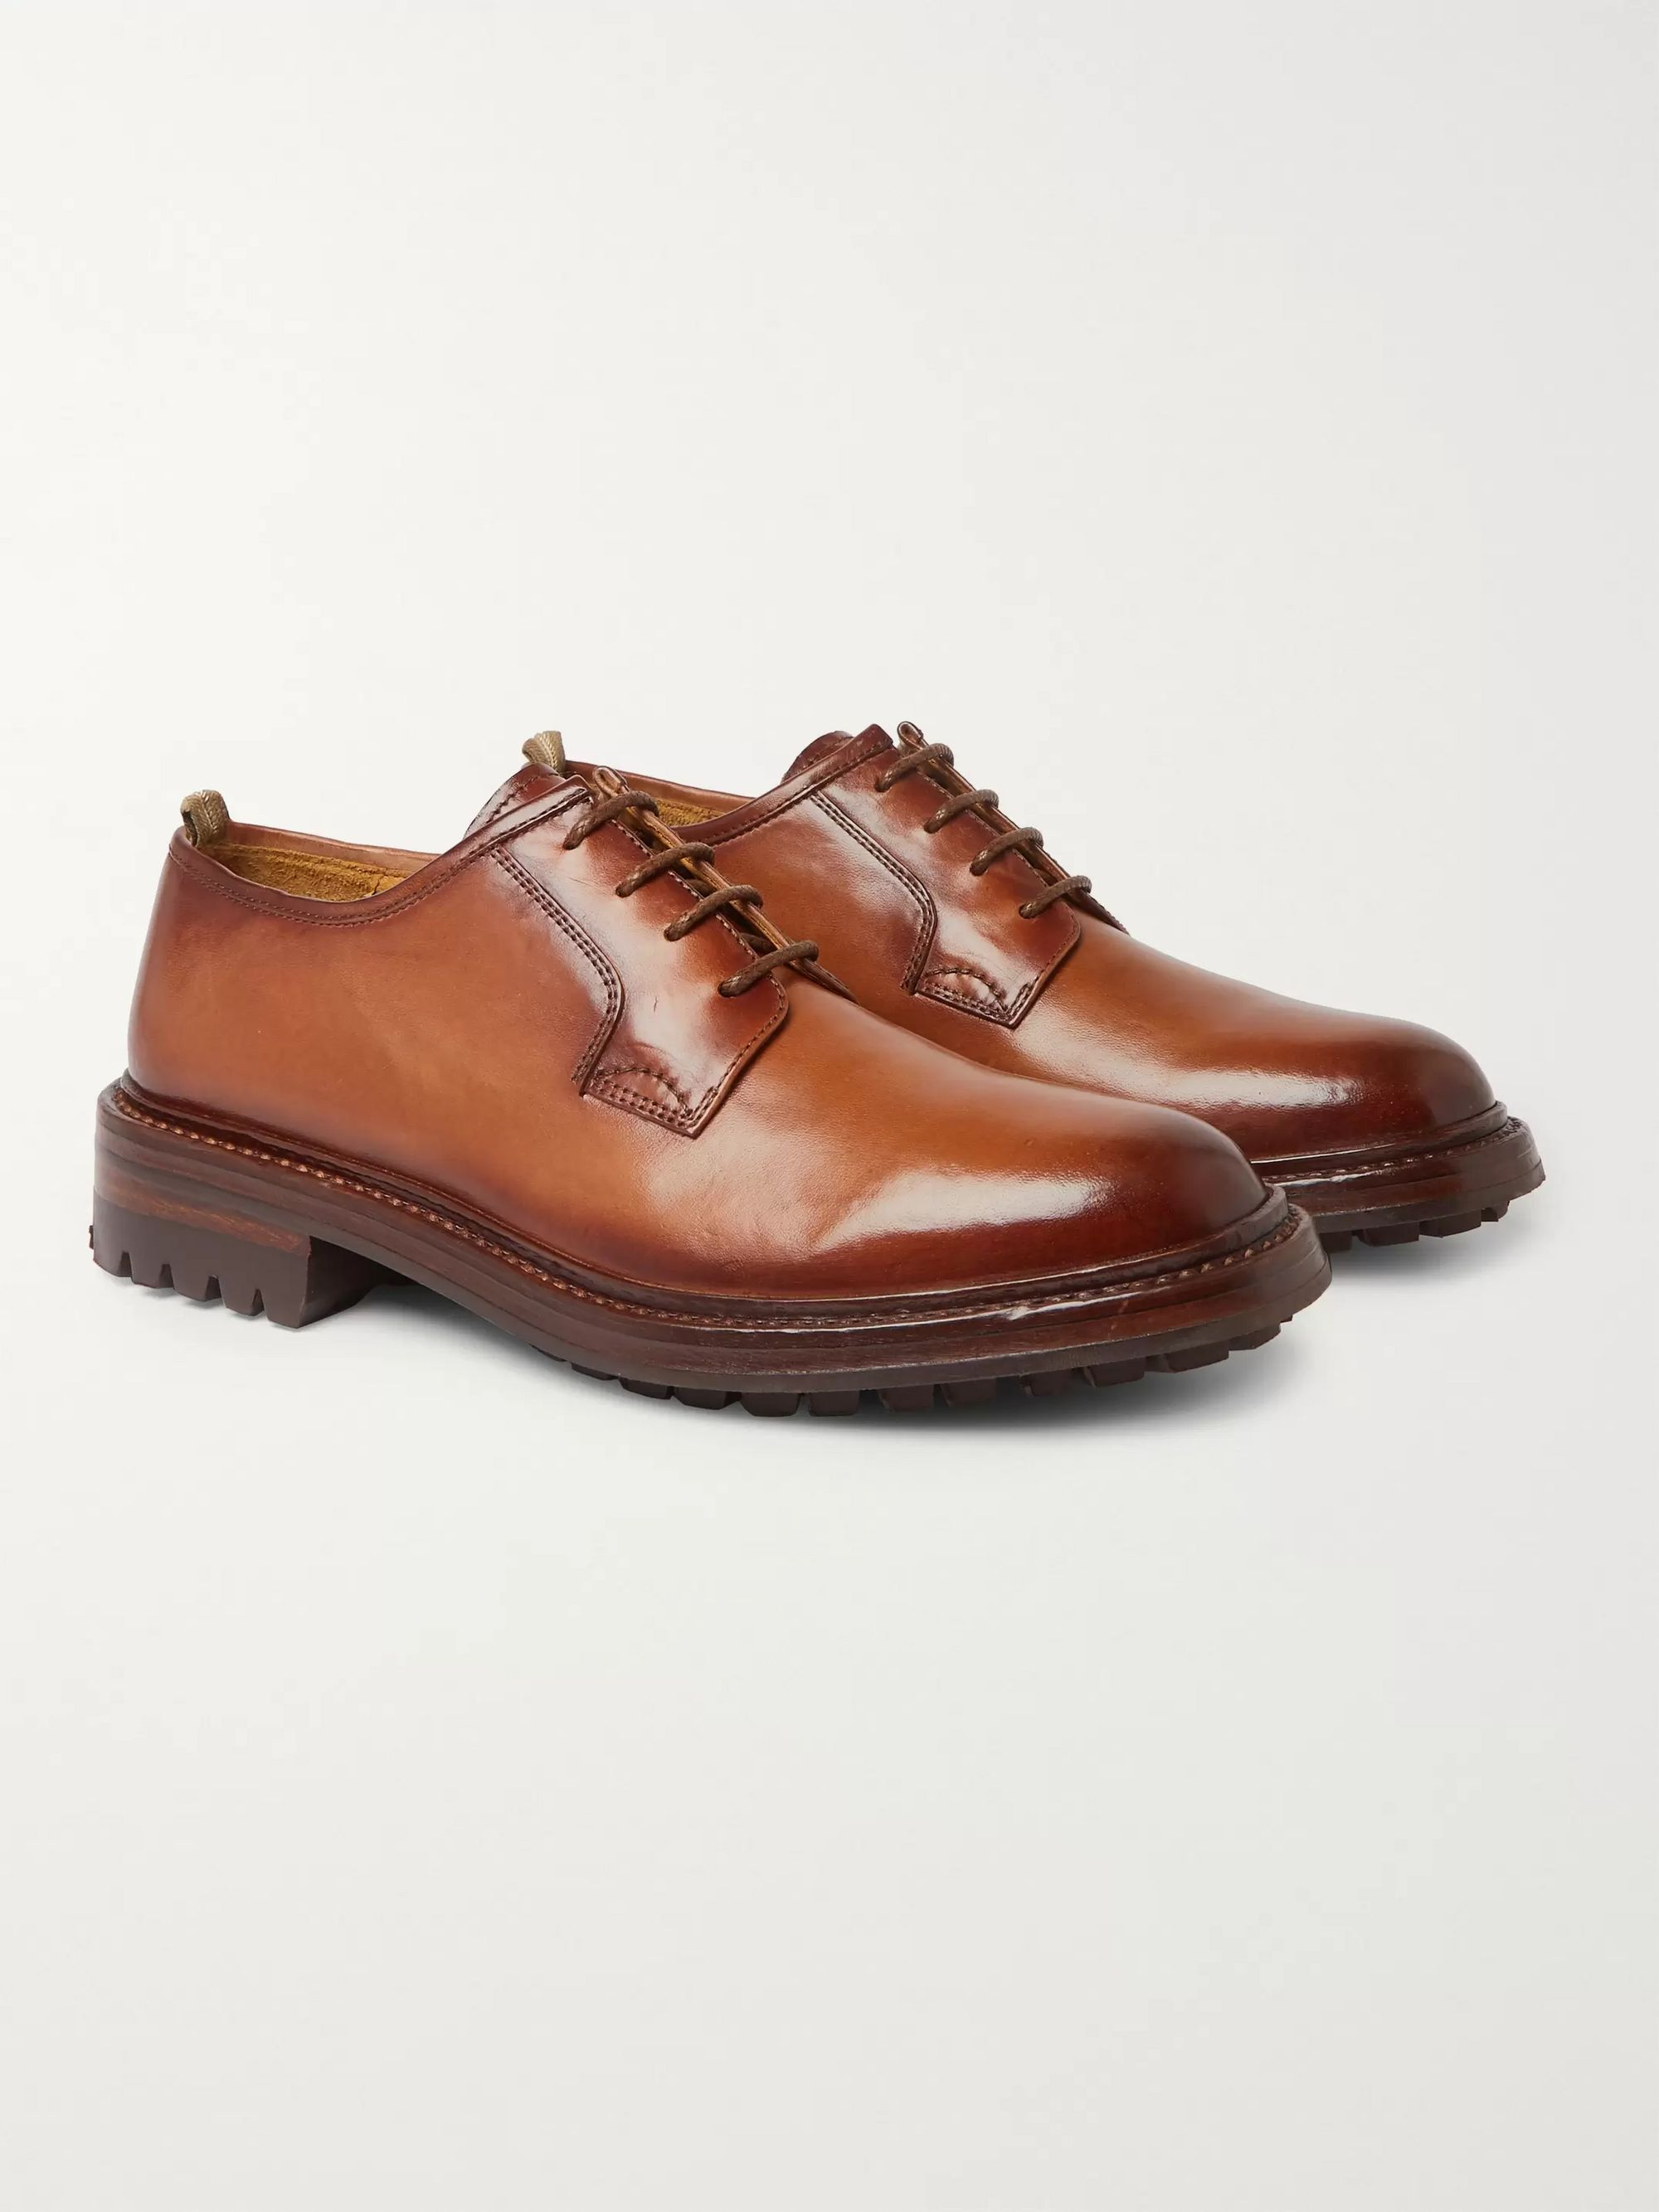 a21bced829c Officine Creative Shoes | MR PORTER